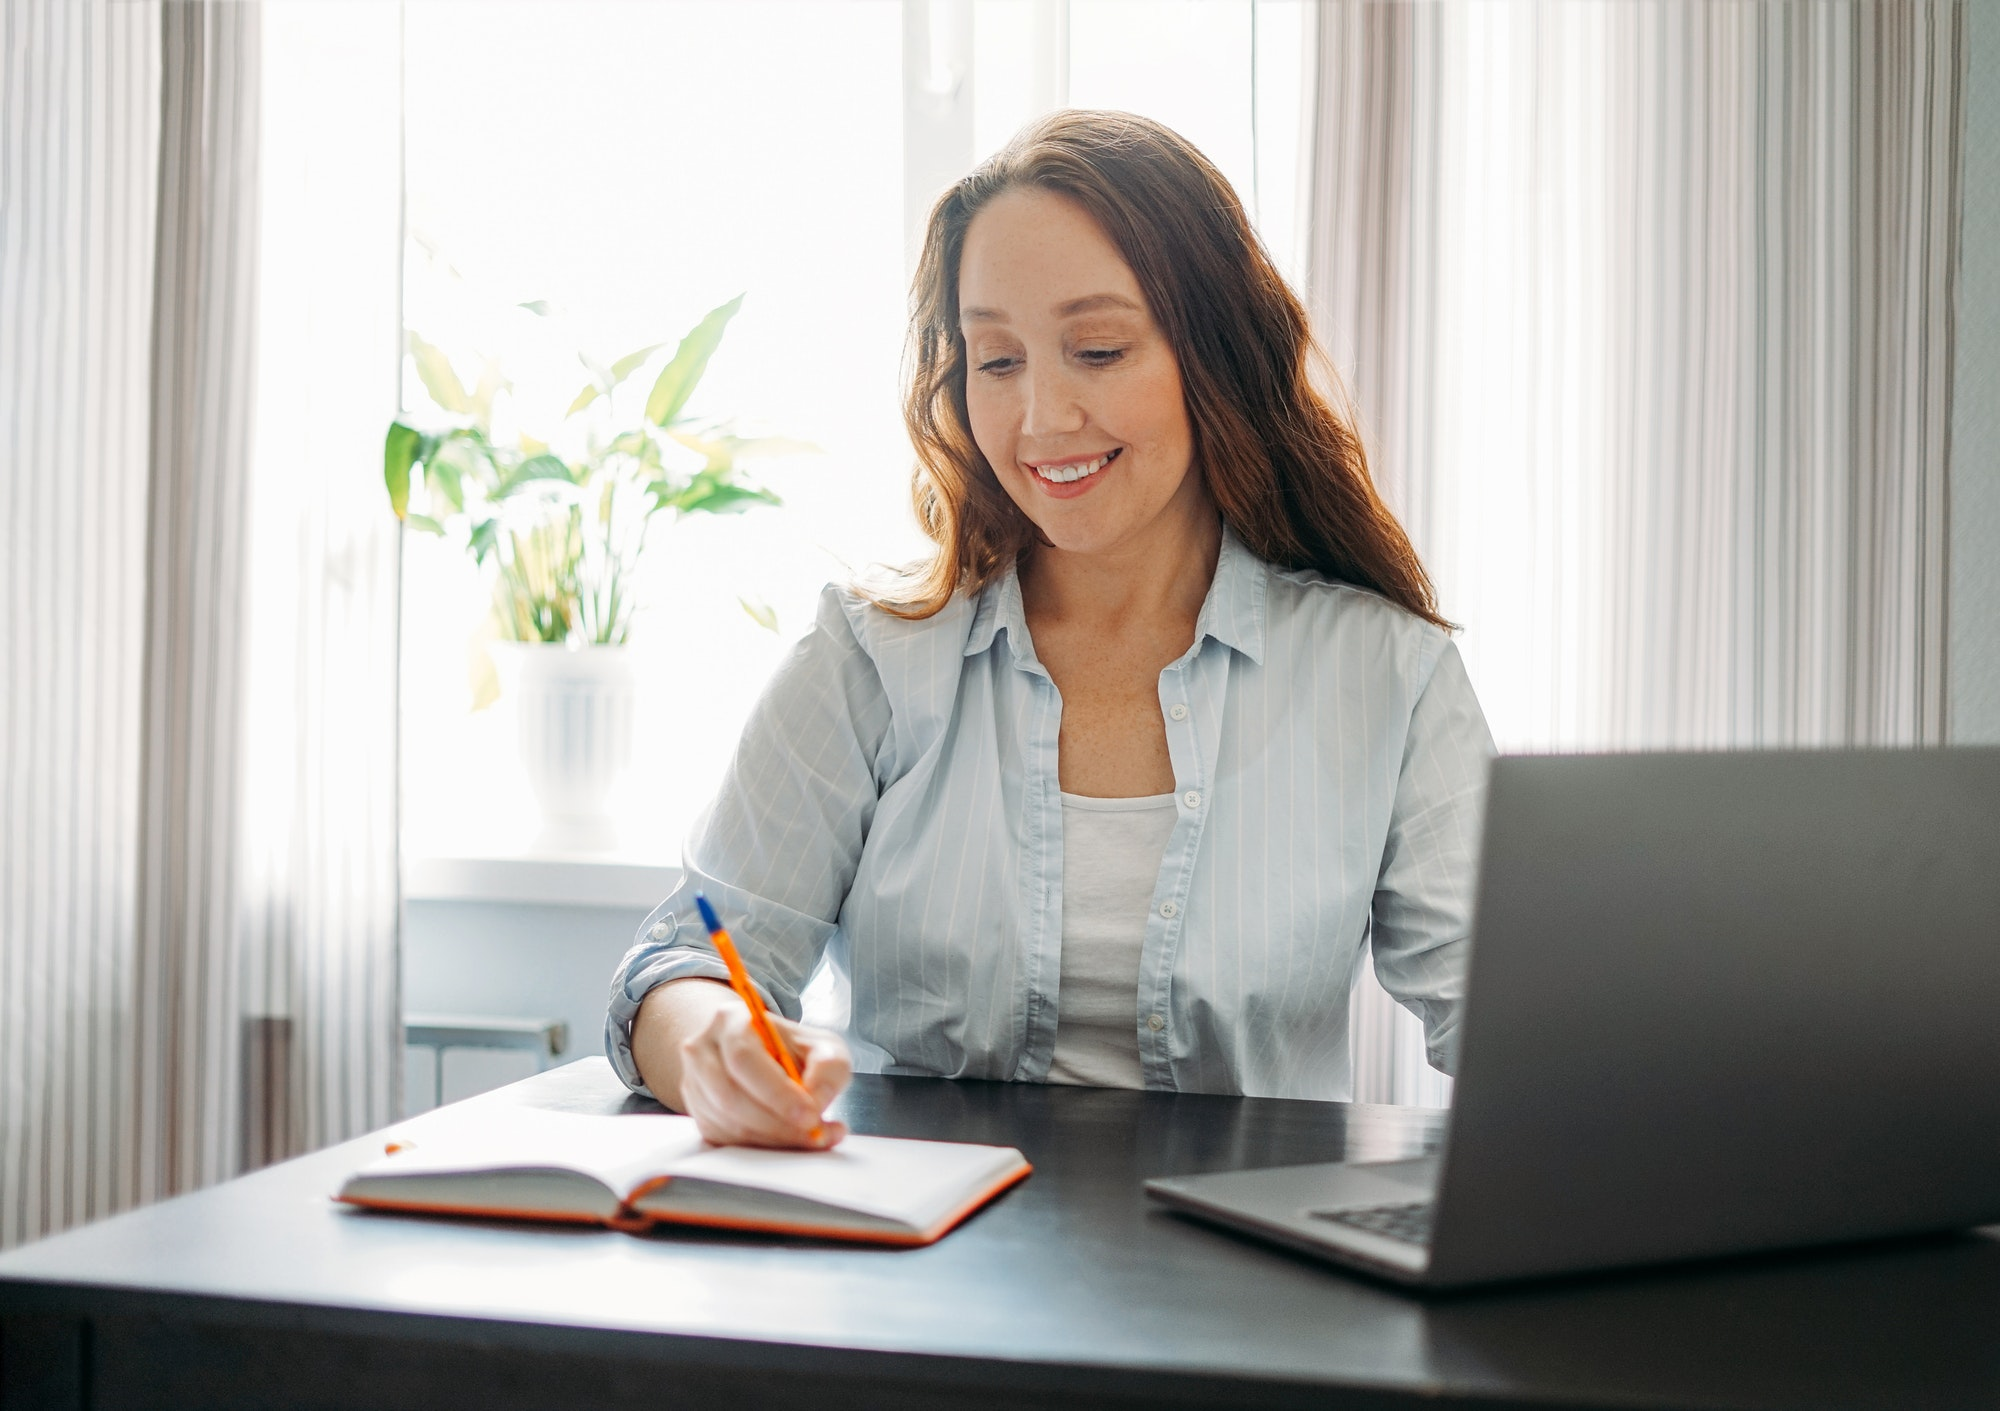 Adult smiling brunette woman doing notes in daily book with opened laptop